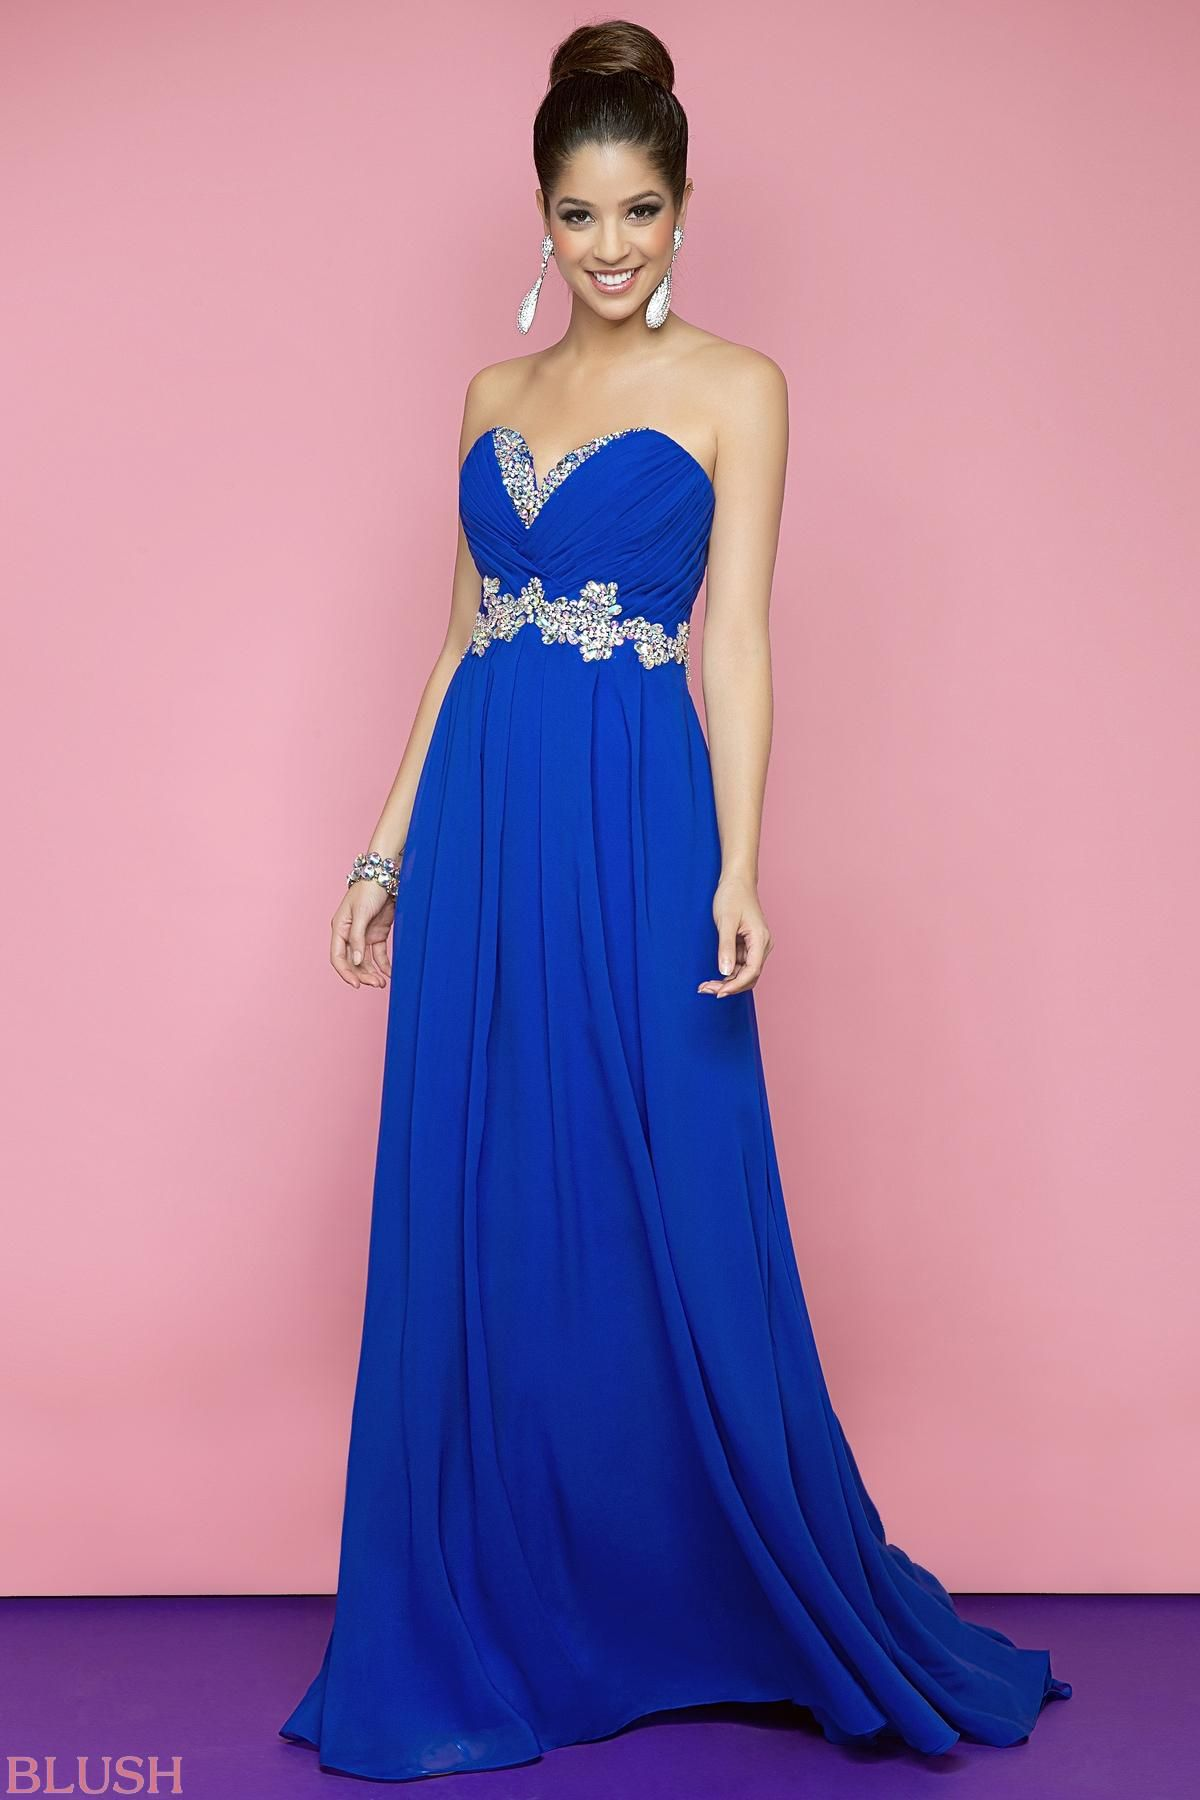 Pin by Yoha SwaGer on Yoha it\'z $waqq | Pinterest | Prom, Jewel and ...